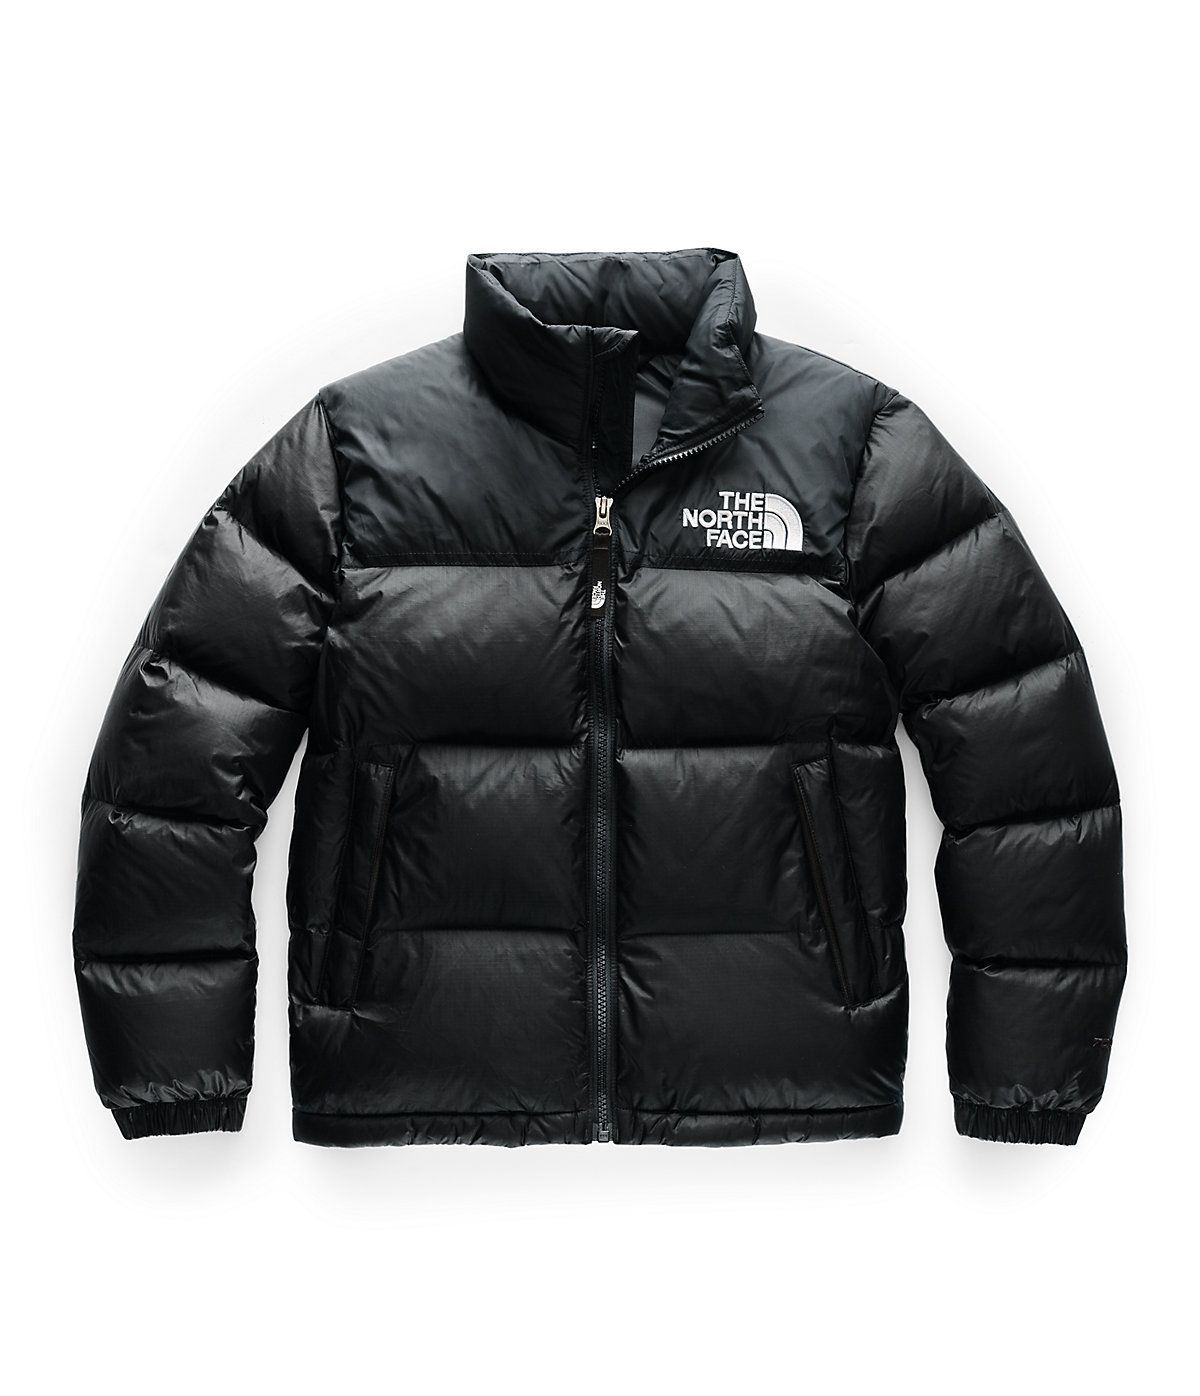 Youth 1996 Retro Nuptse Jacket The North Face In 2021 North Face Puffer Jacket Jackets The North Face [ 1396 x 1200 Pixel ]